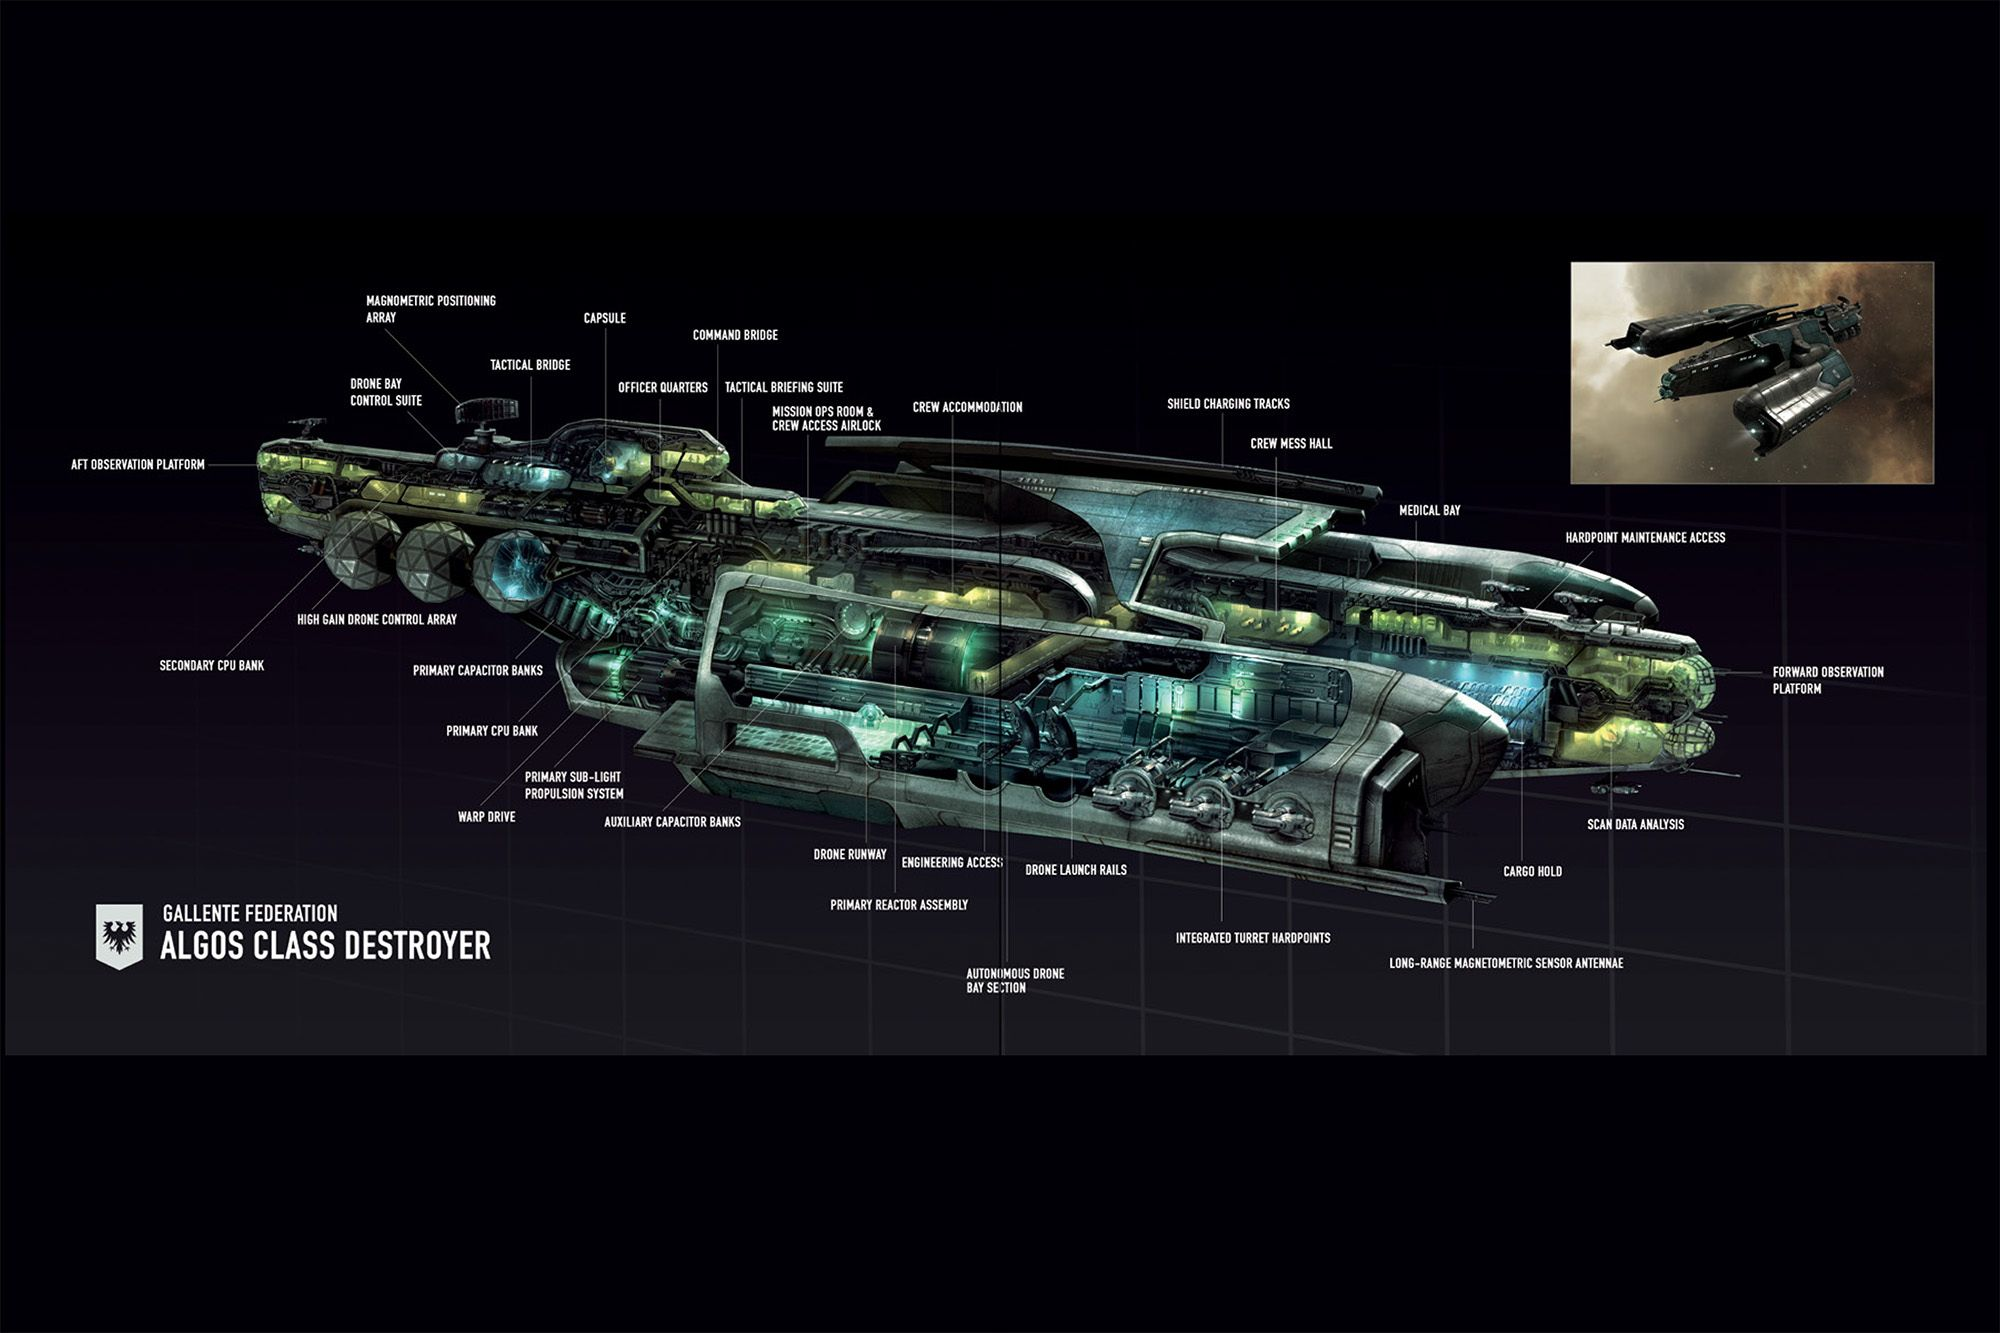 Concept ships echelon from eve online concept art illustration concept ships echelon from eve online concept art illustration pinterest eve online concept ships and ships malvernweather Gallery